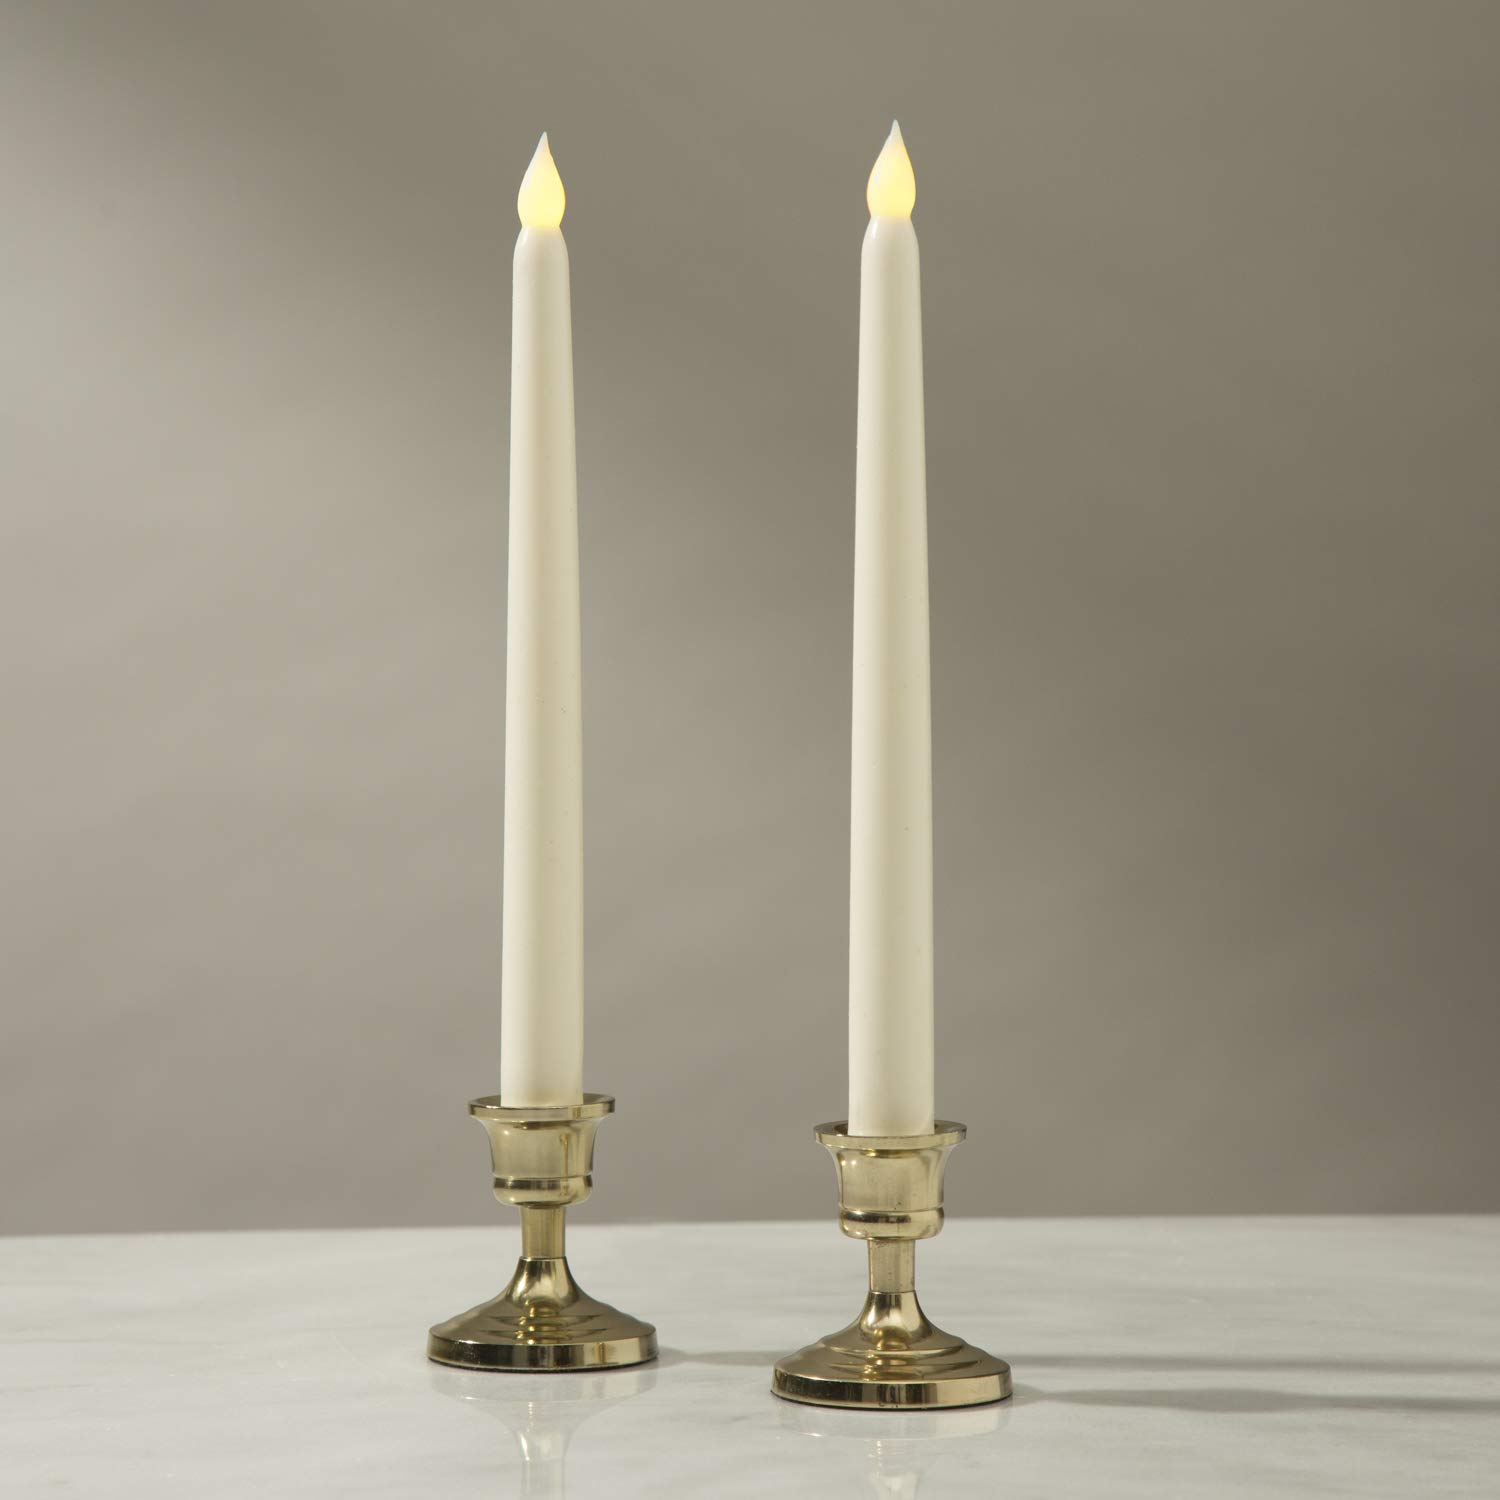 LampLust Brass Finished Taper Candle Holders, 3 Inches, Metal, Traditional Shape, Fits Standard Candlestick Diameters - Set of 2 by LampLust (Image #5)